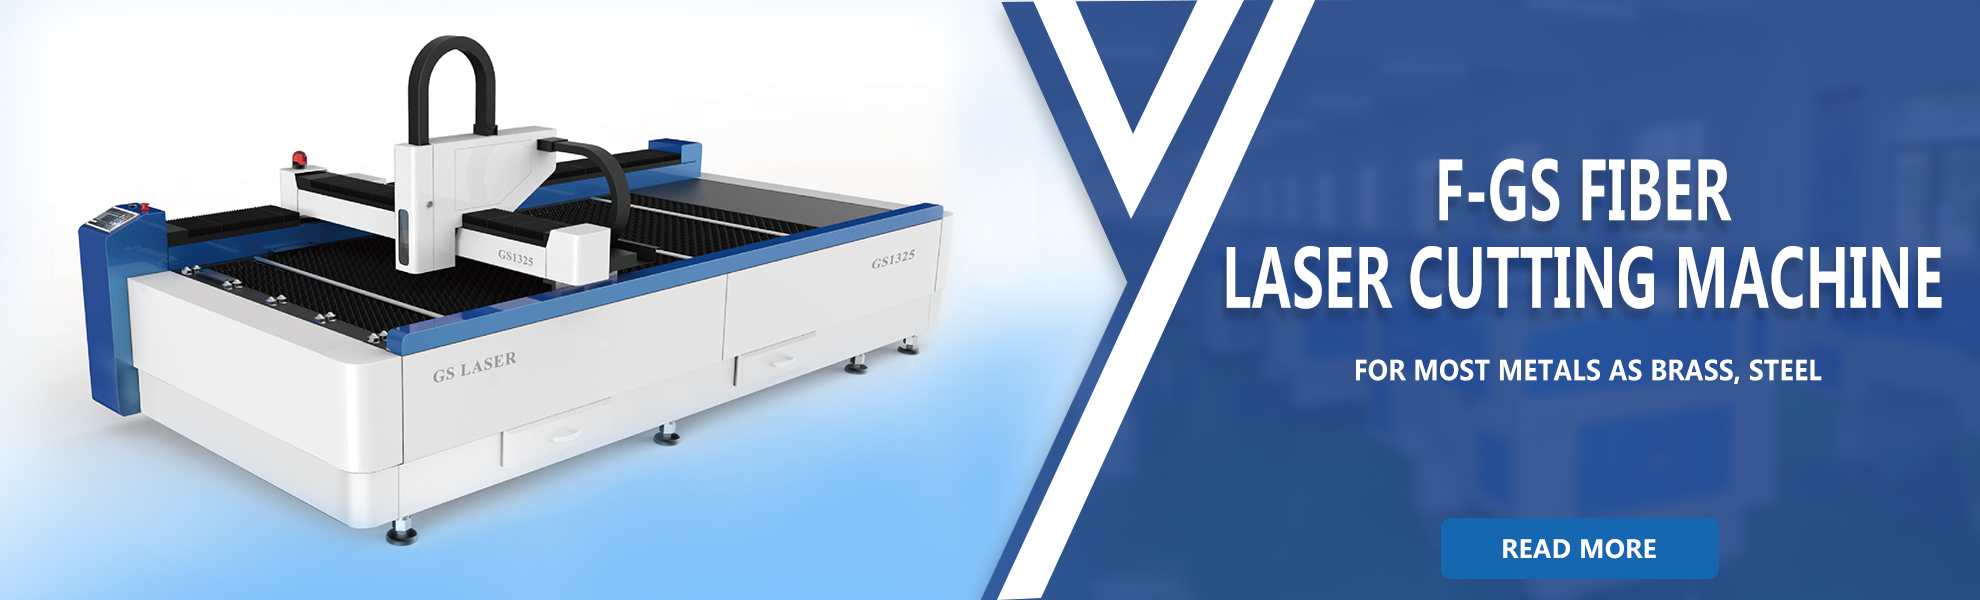 Goldensign Fiber Laser Cutter for Metal Sheet